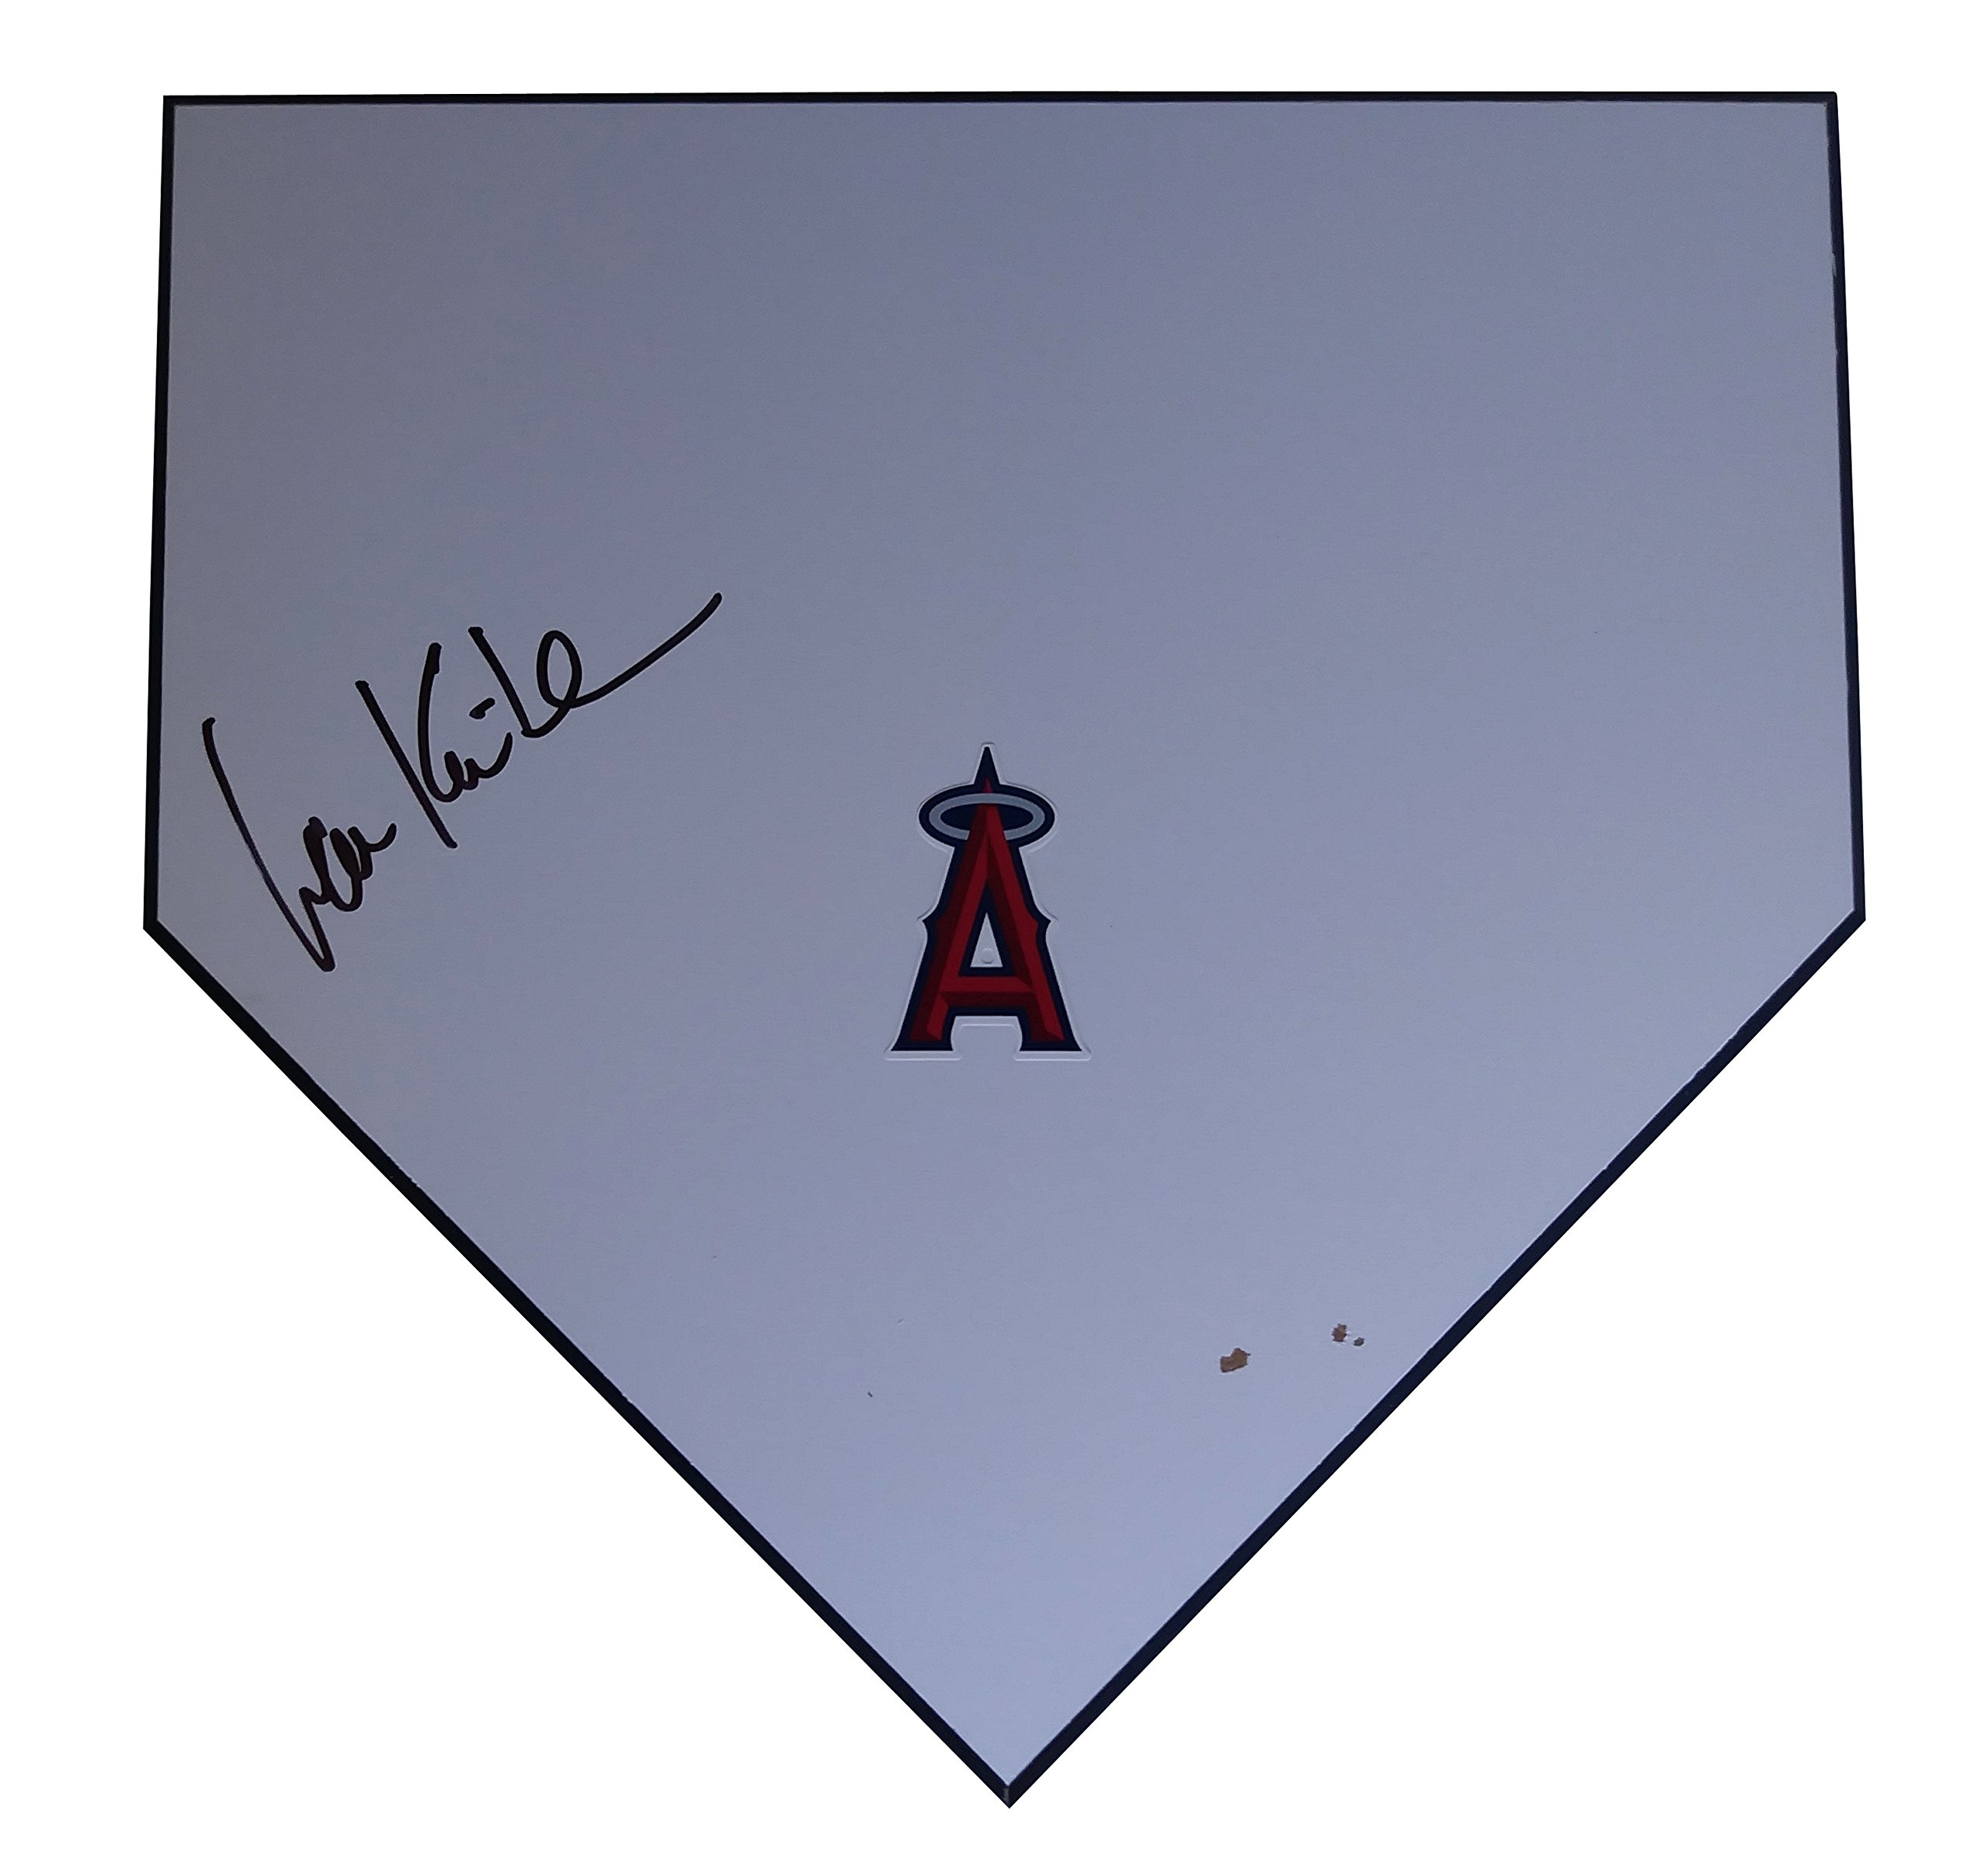 Los Angeles Angels Ian Kinsler Autographed Hand Signed LA Angels Baseball Home Plate Base with Proof Photo of Signing and COA